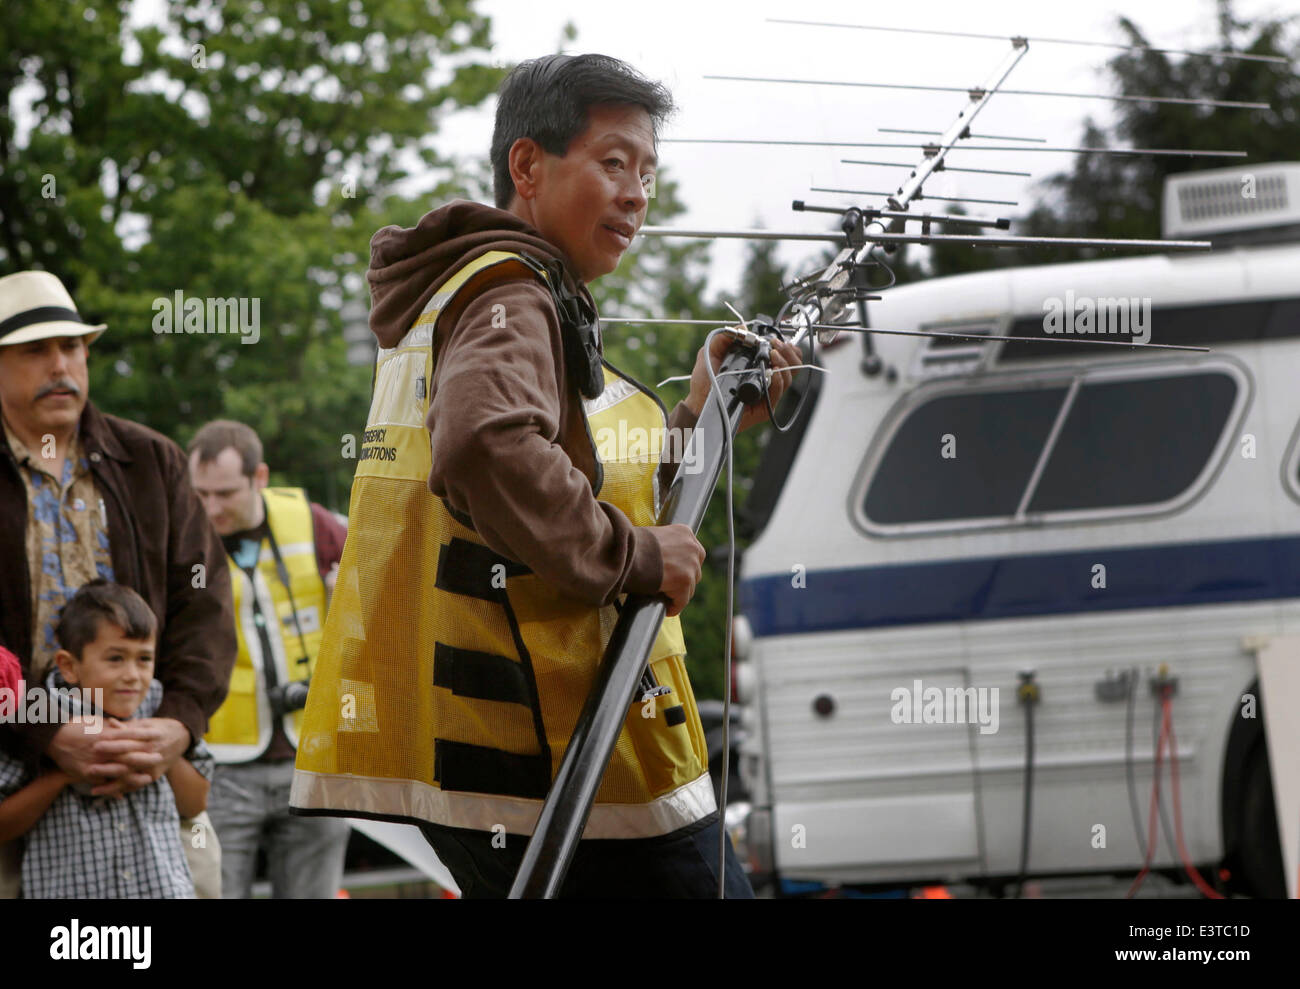 Vancouver, Canada. 28th June, 2014. An amateur radio operator adjusts the antenna angle for better signal reception Stock Photo